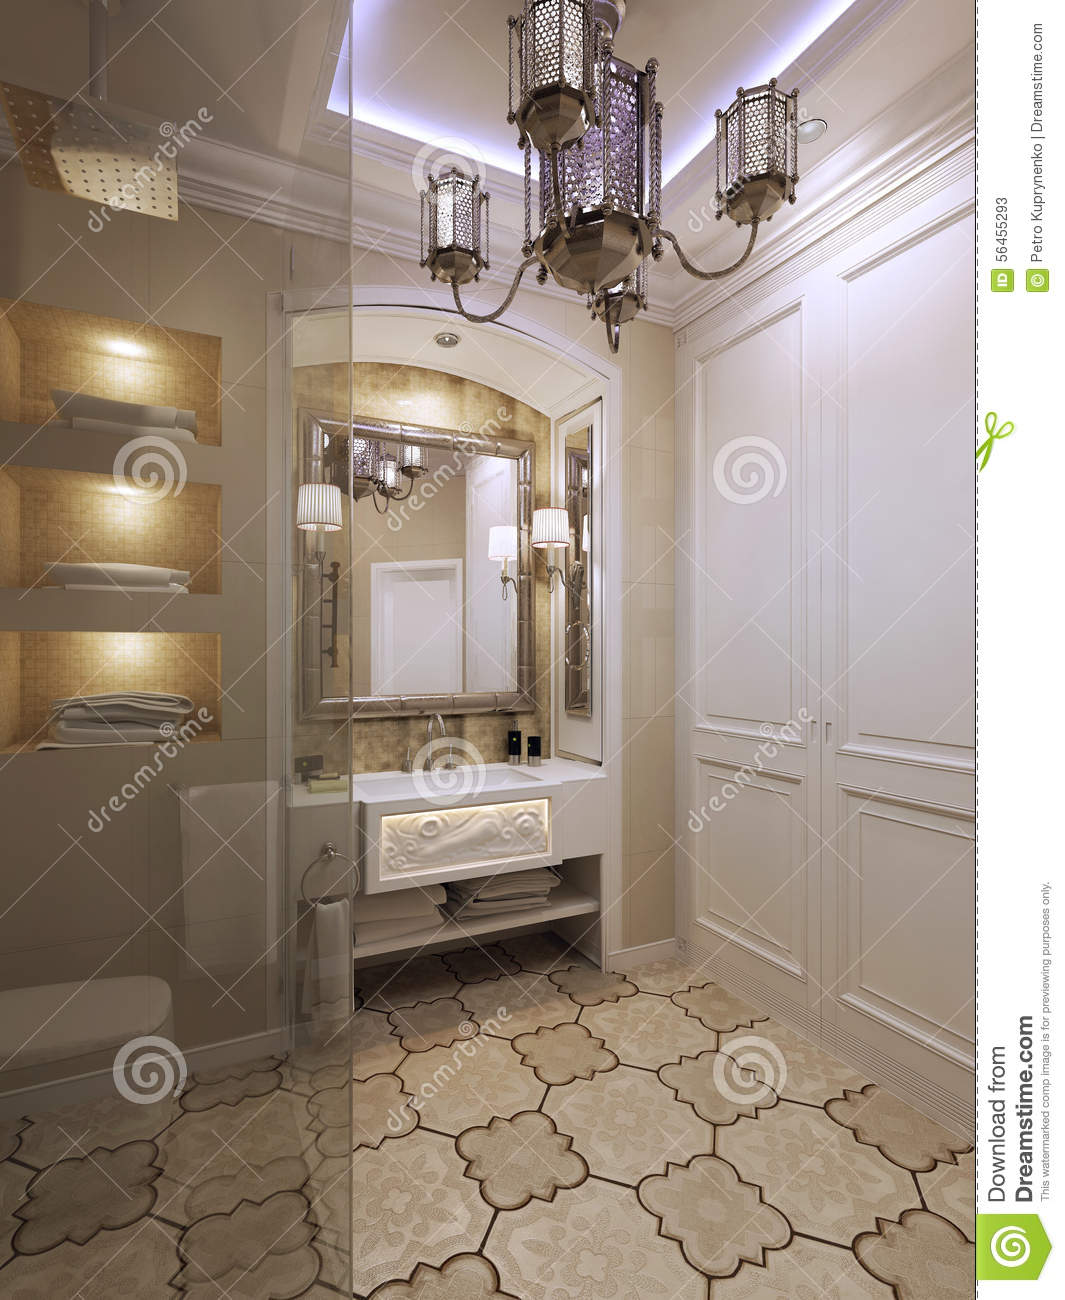 Salle de bain orientale for What does salle de bain mean